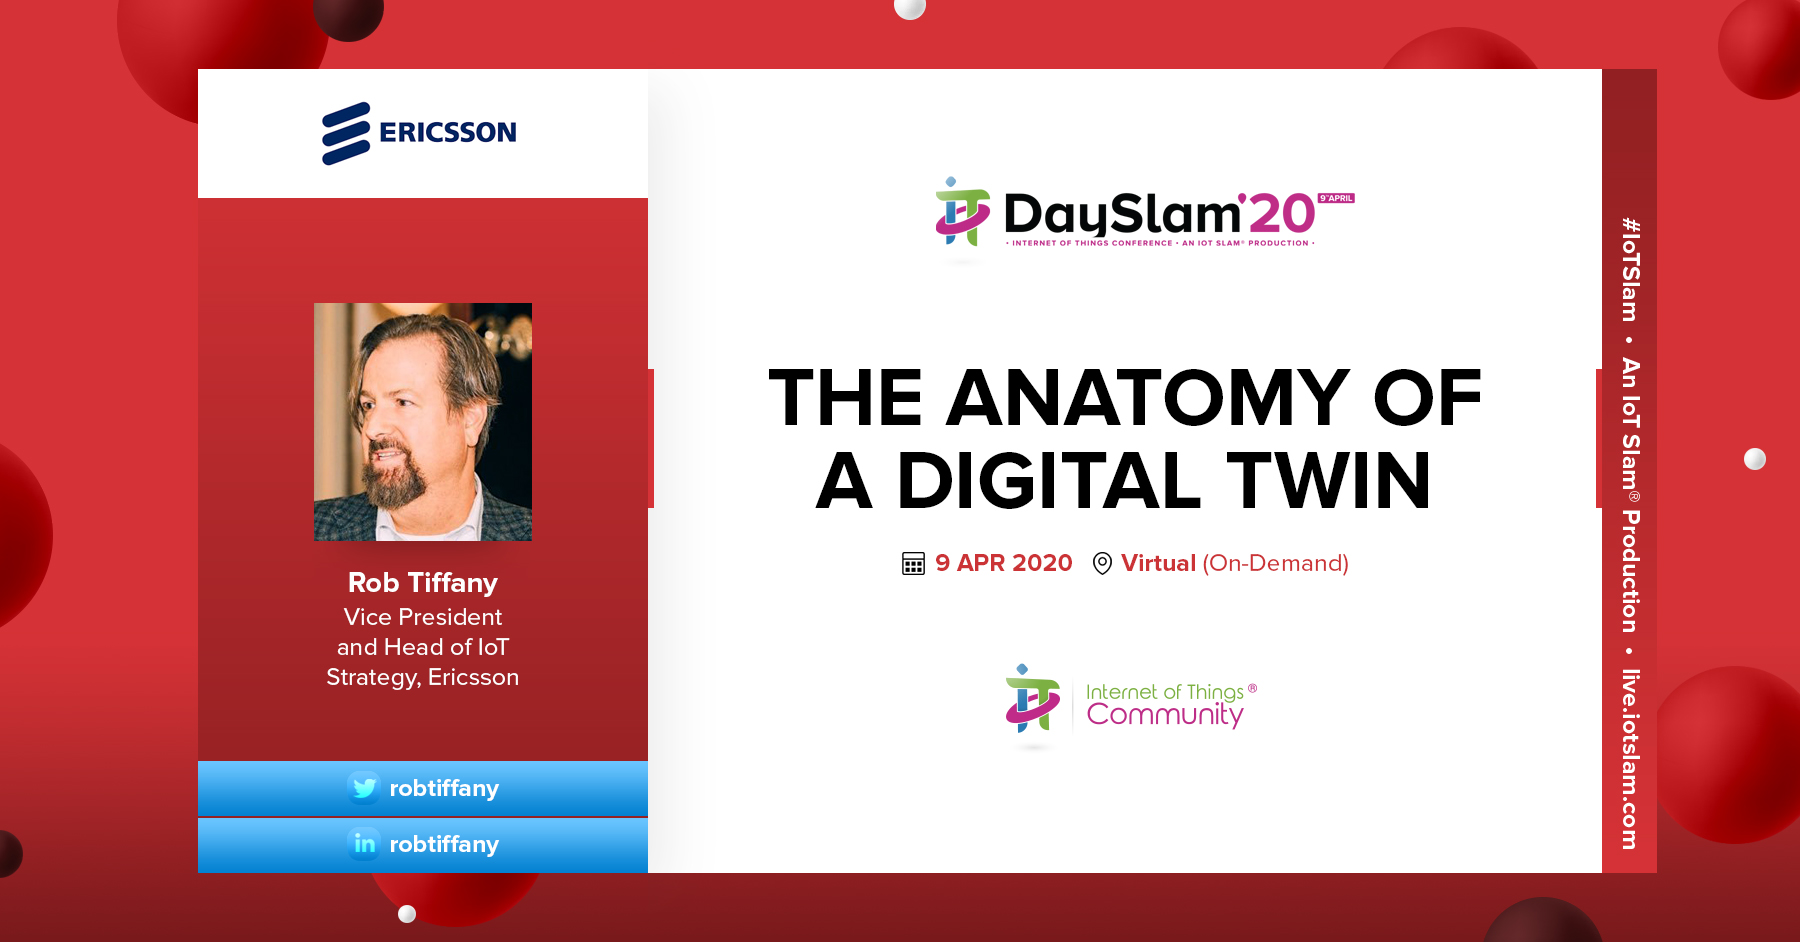 The Anatomy Of A Digital Twin